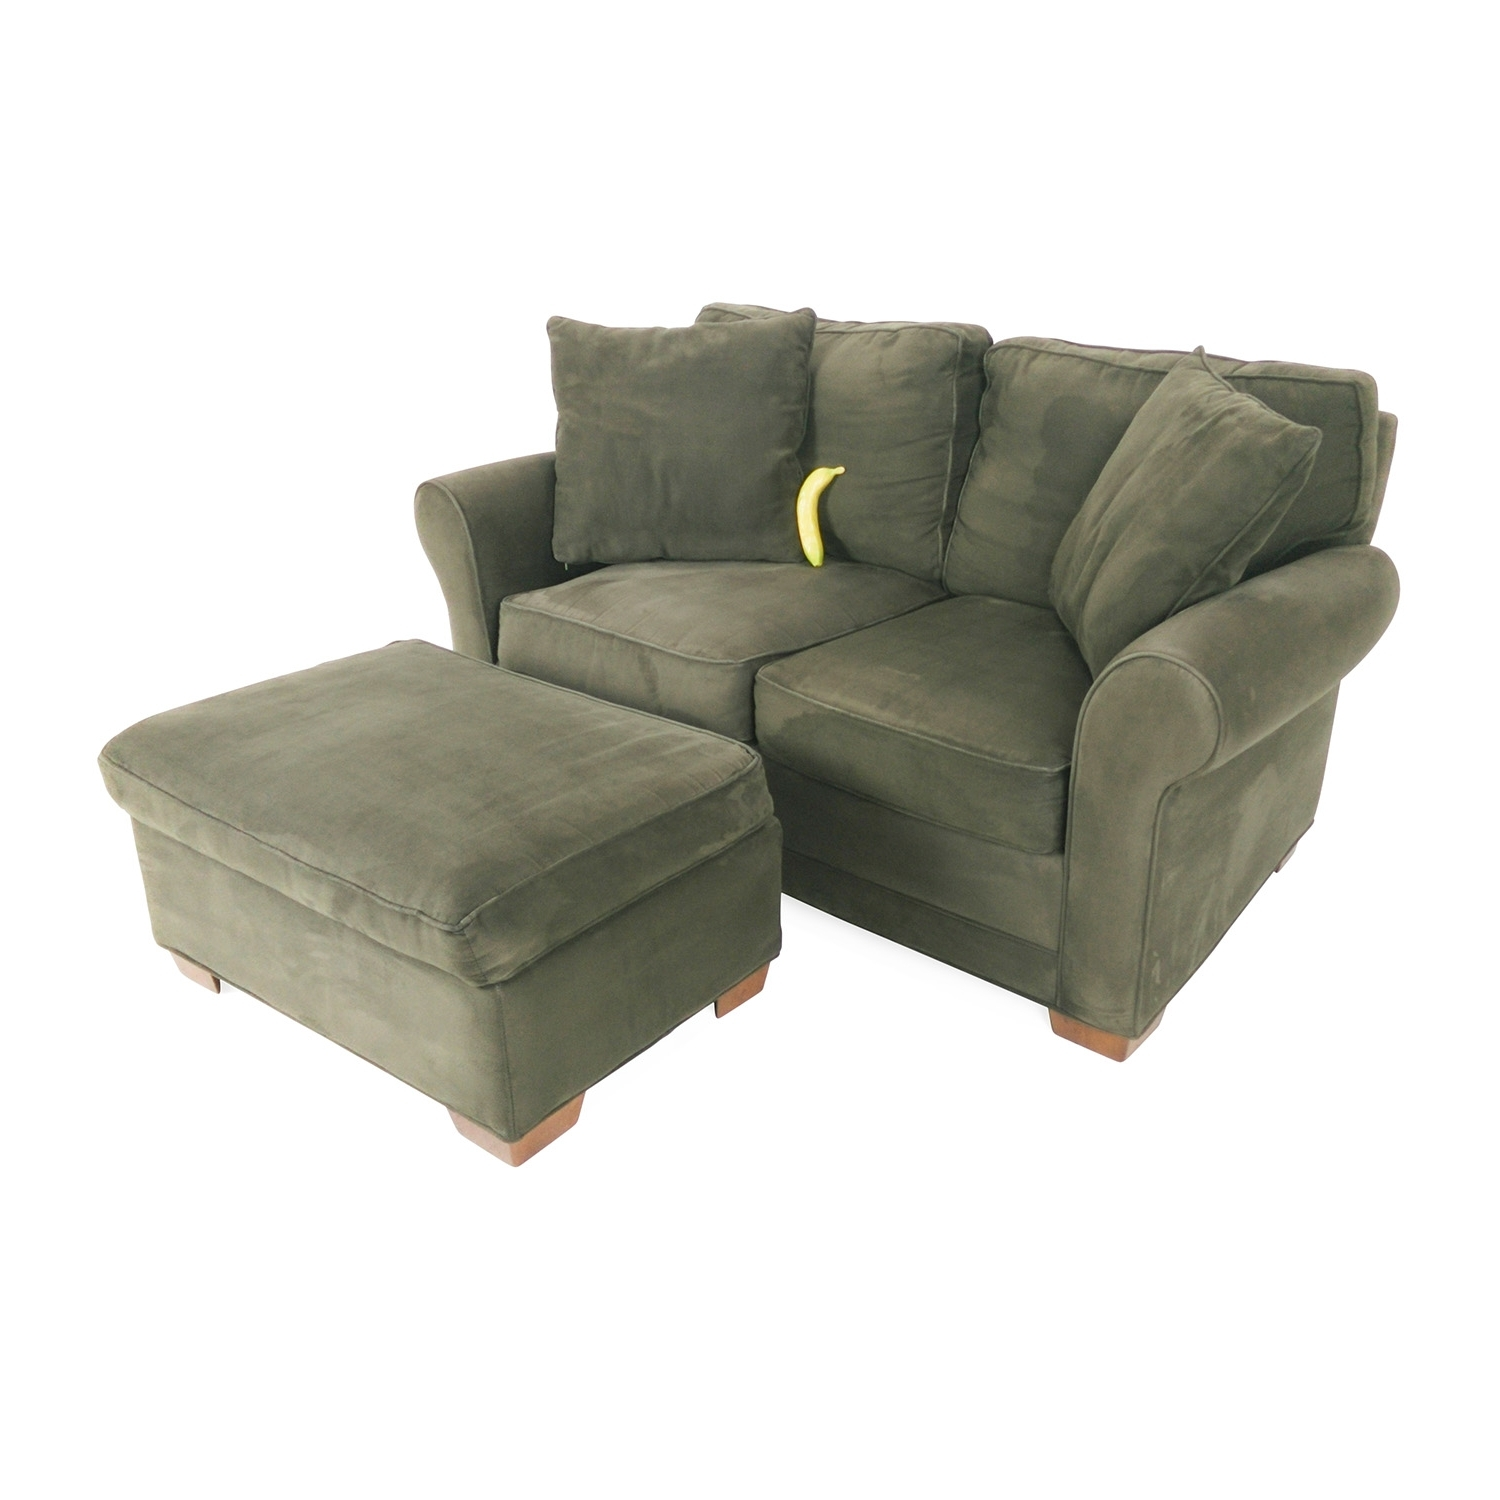 [%78% Off – Raymour And Flanigan Raymour And Flanigan Love Seat And Inside Newest Loveseats With Ottoman|Loveseats With Ottoman With 2019 78% Off – Raymour And Flanigan Raymour And Flanigan Love Seat And|Widely Used Loveseats With Ottoman Throughout 78% Off – Raymour And Flanigan Raymour And Flanigan Love Seat And|Well Liked 78% Off – Raymour And Flanigan Raymour And Flanigan Love Seat And Within Loveseats With Ottoman%] (View 7 of 20)